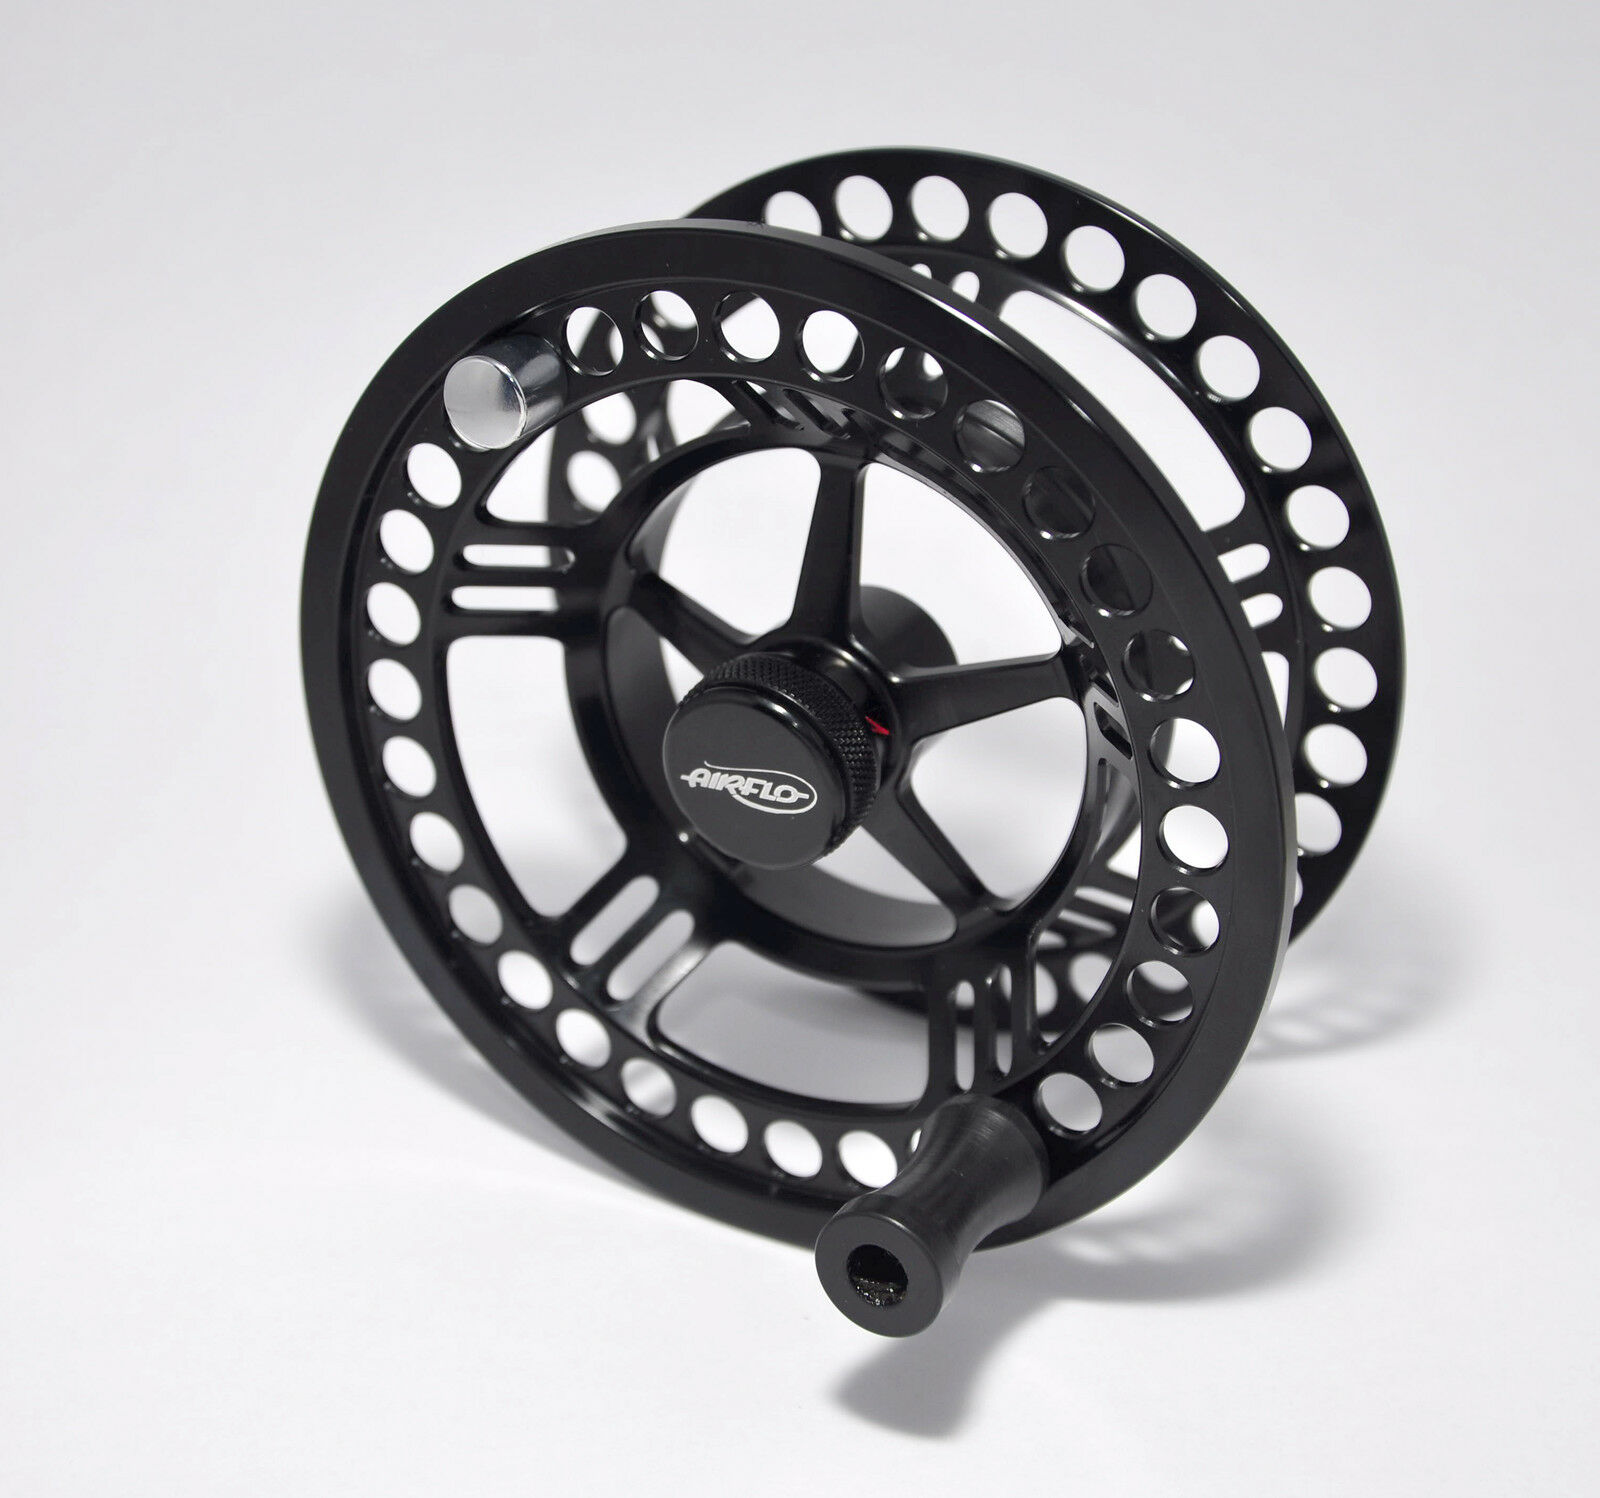 Airflo new v lite fly reel spare spools fly fishing reel for Fly fishing reels ebay